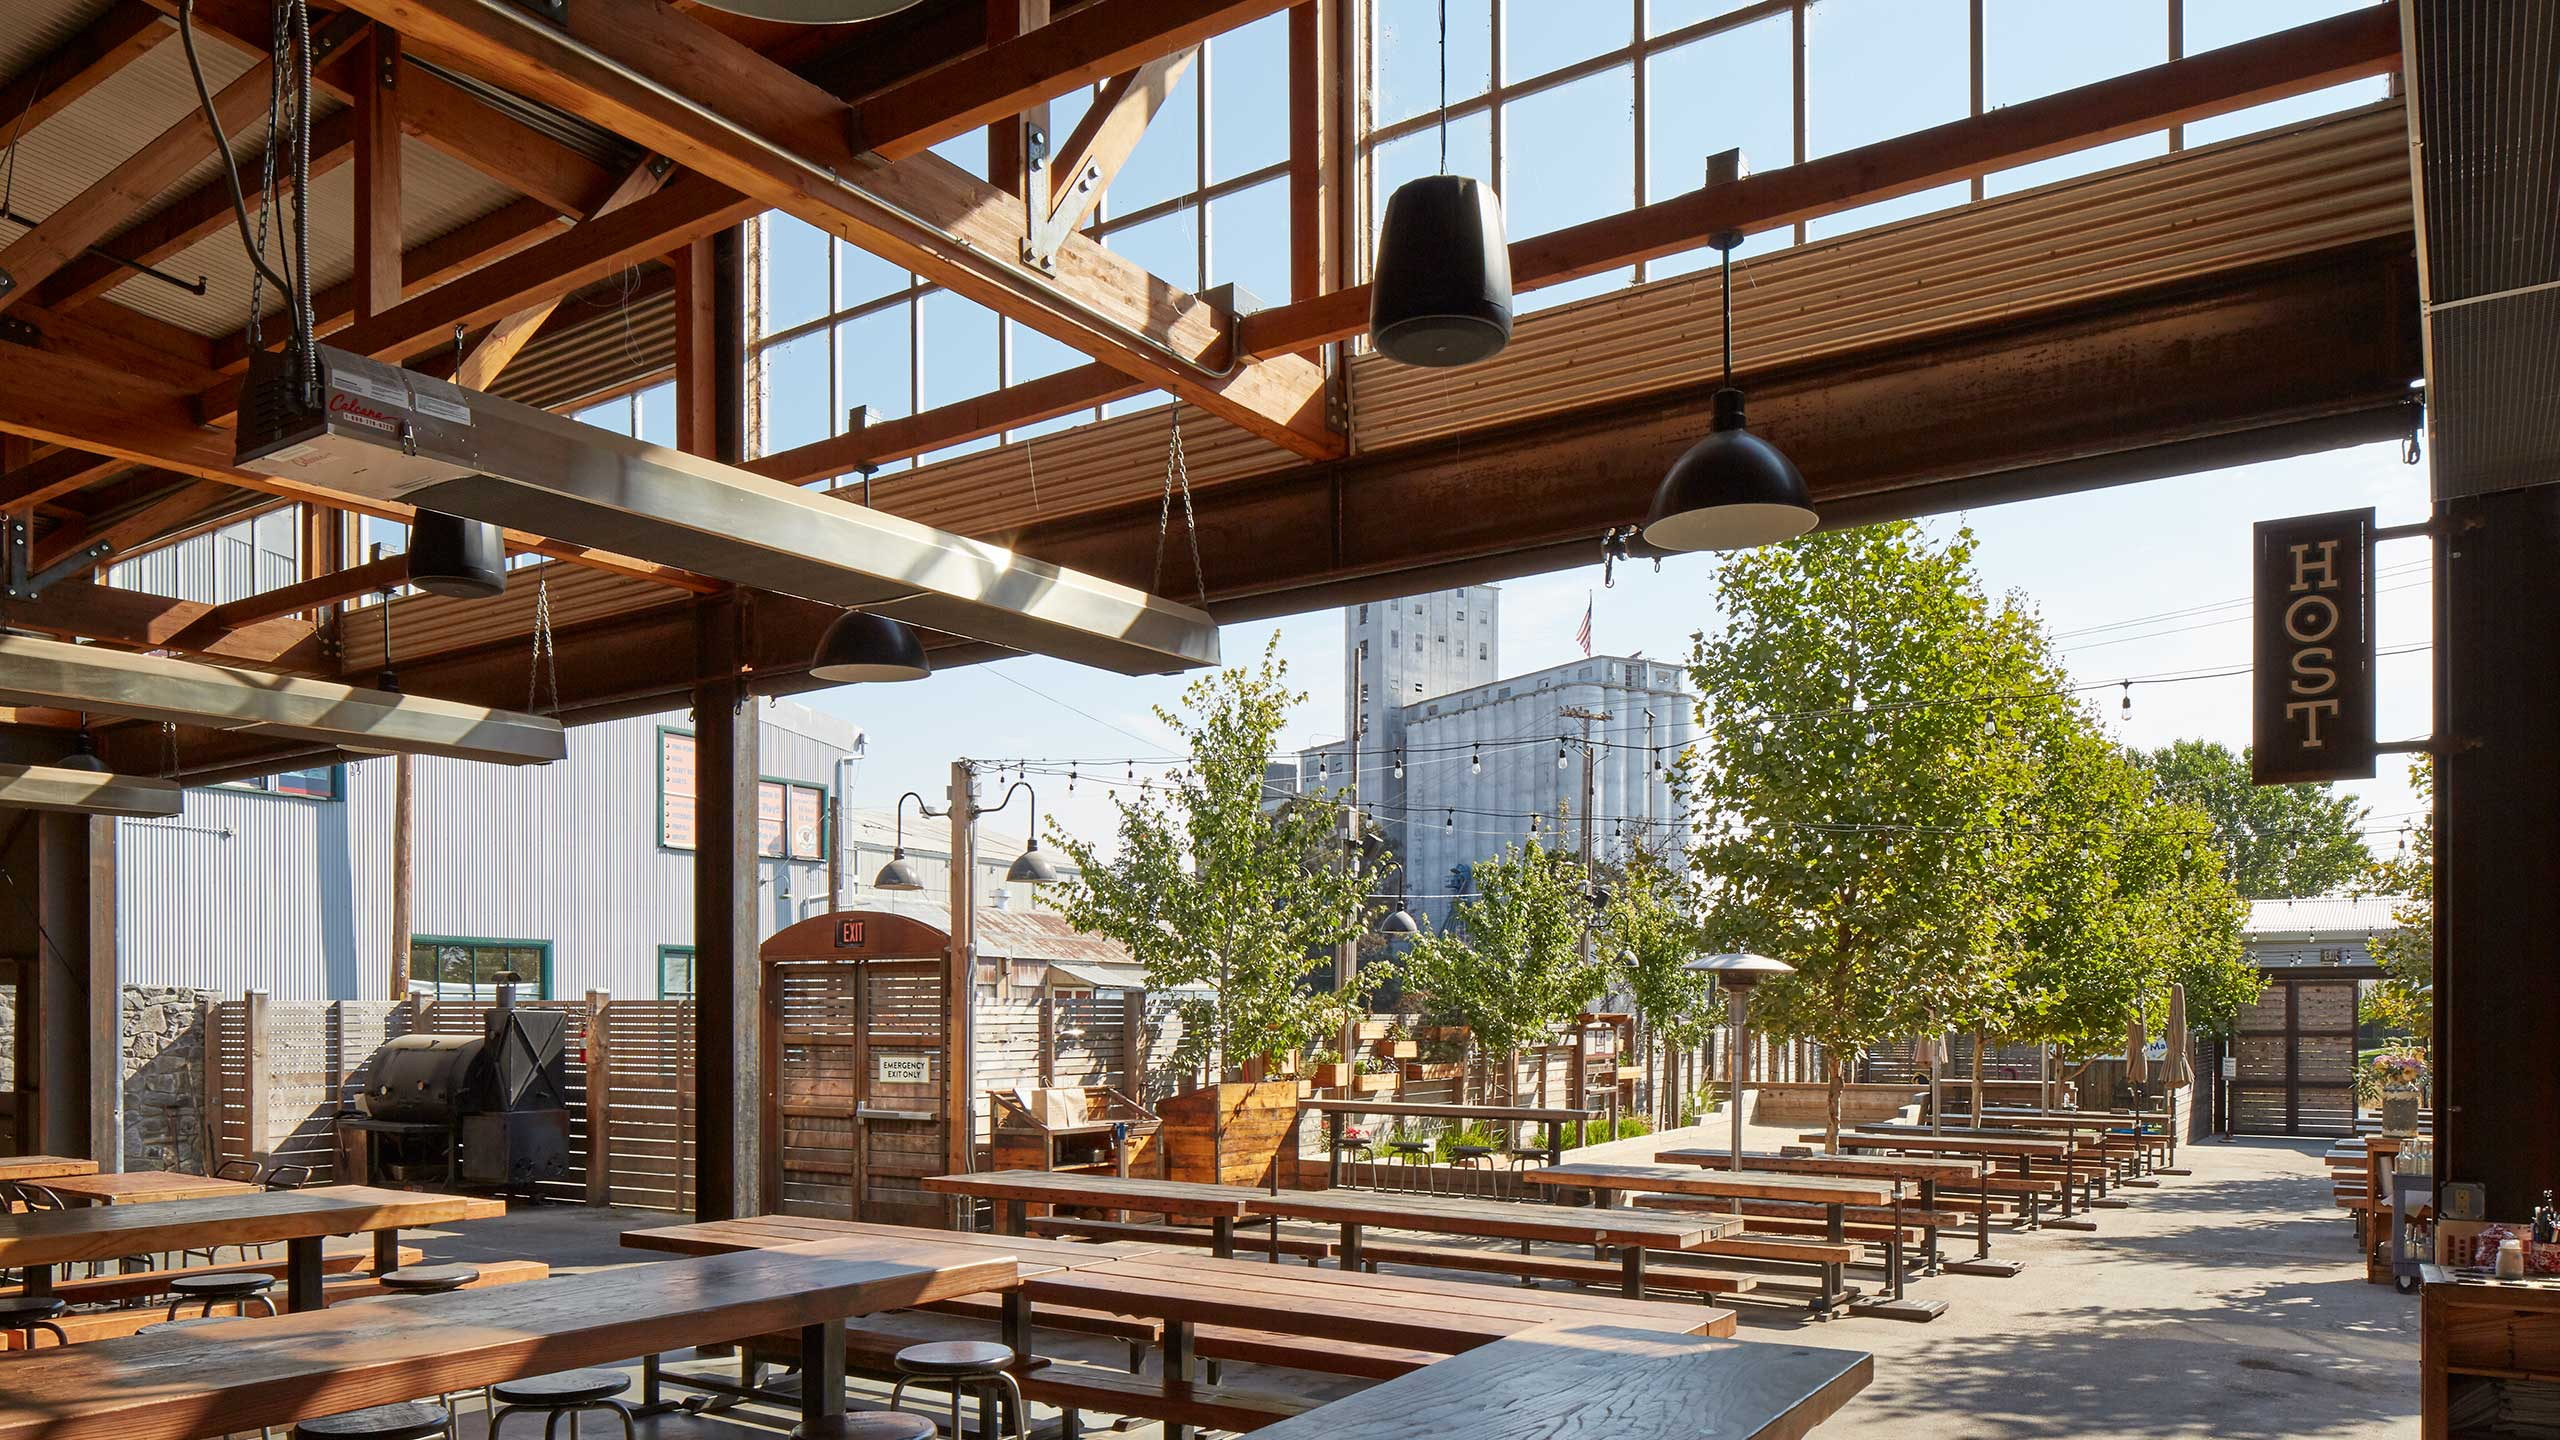 Petaluma-Restaurant-Design-Brewsters-Roof-structure-and-in-and-outdoor-seating-area